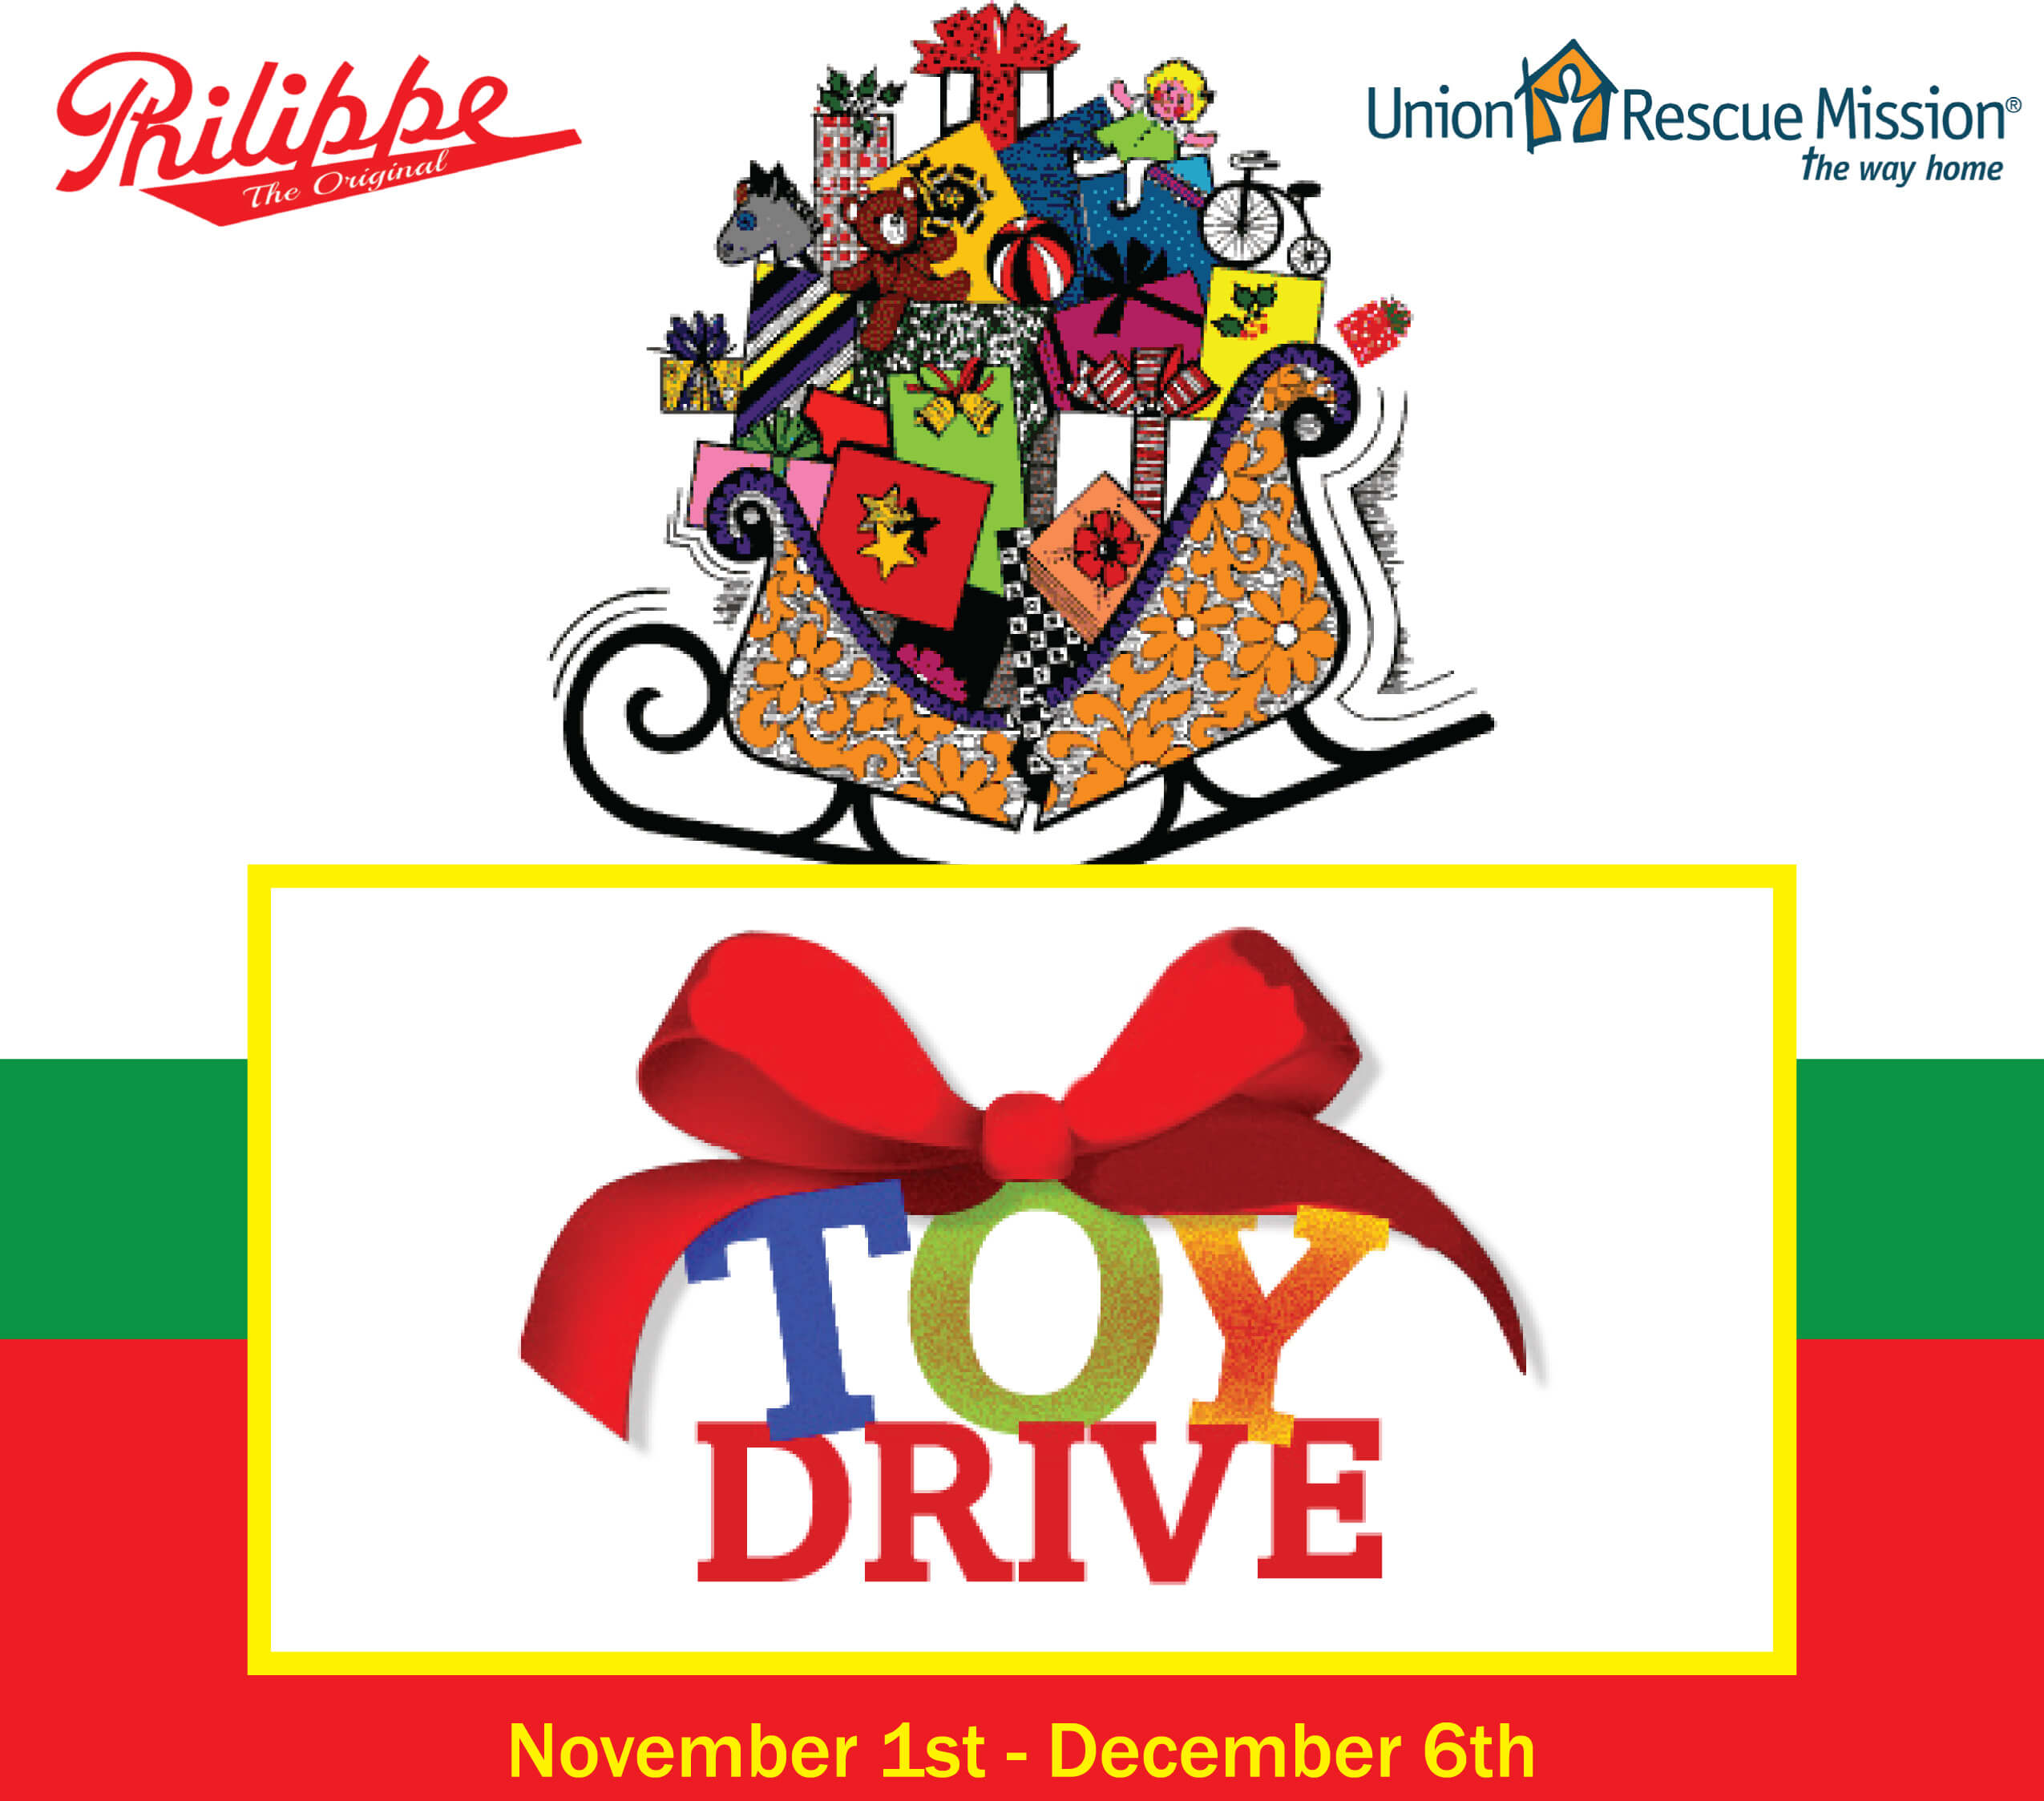 Philippe's Toy Drive